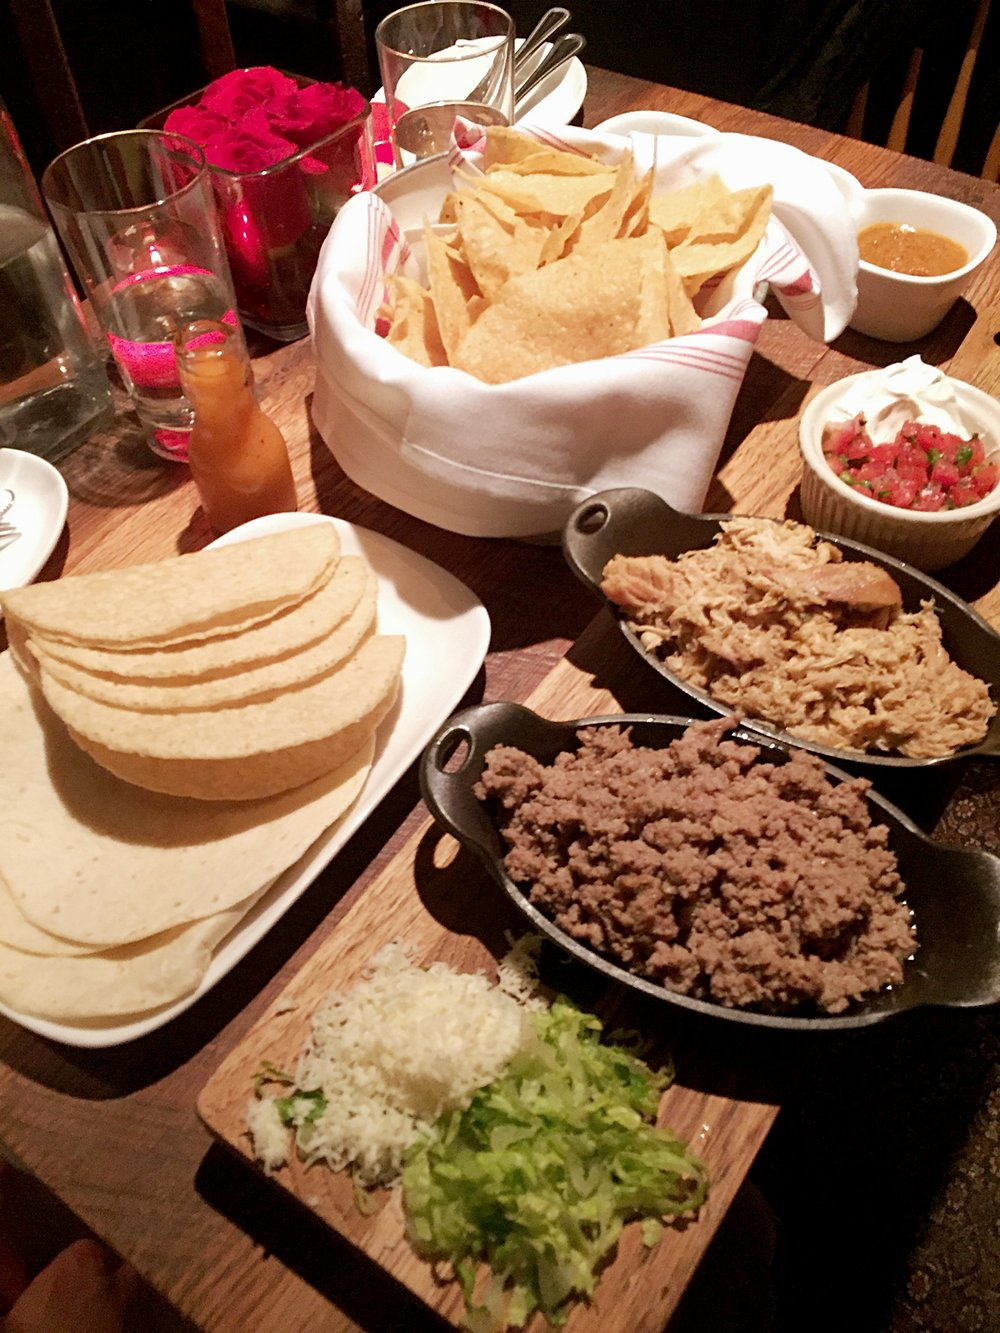 Taco Night Spread